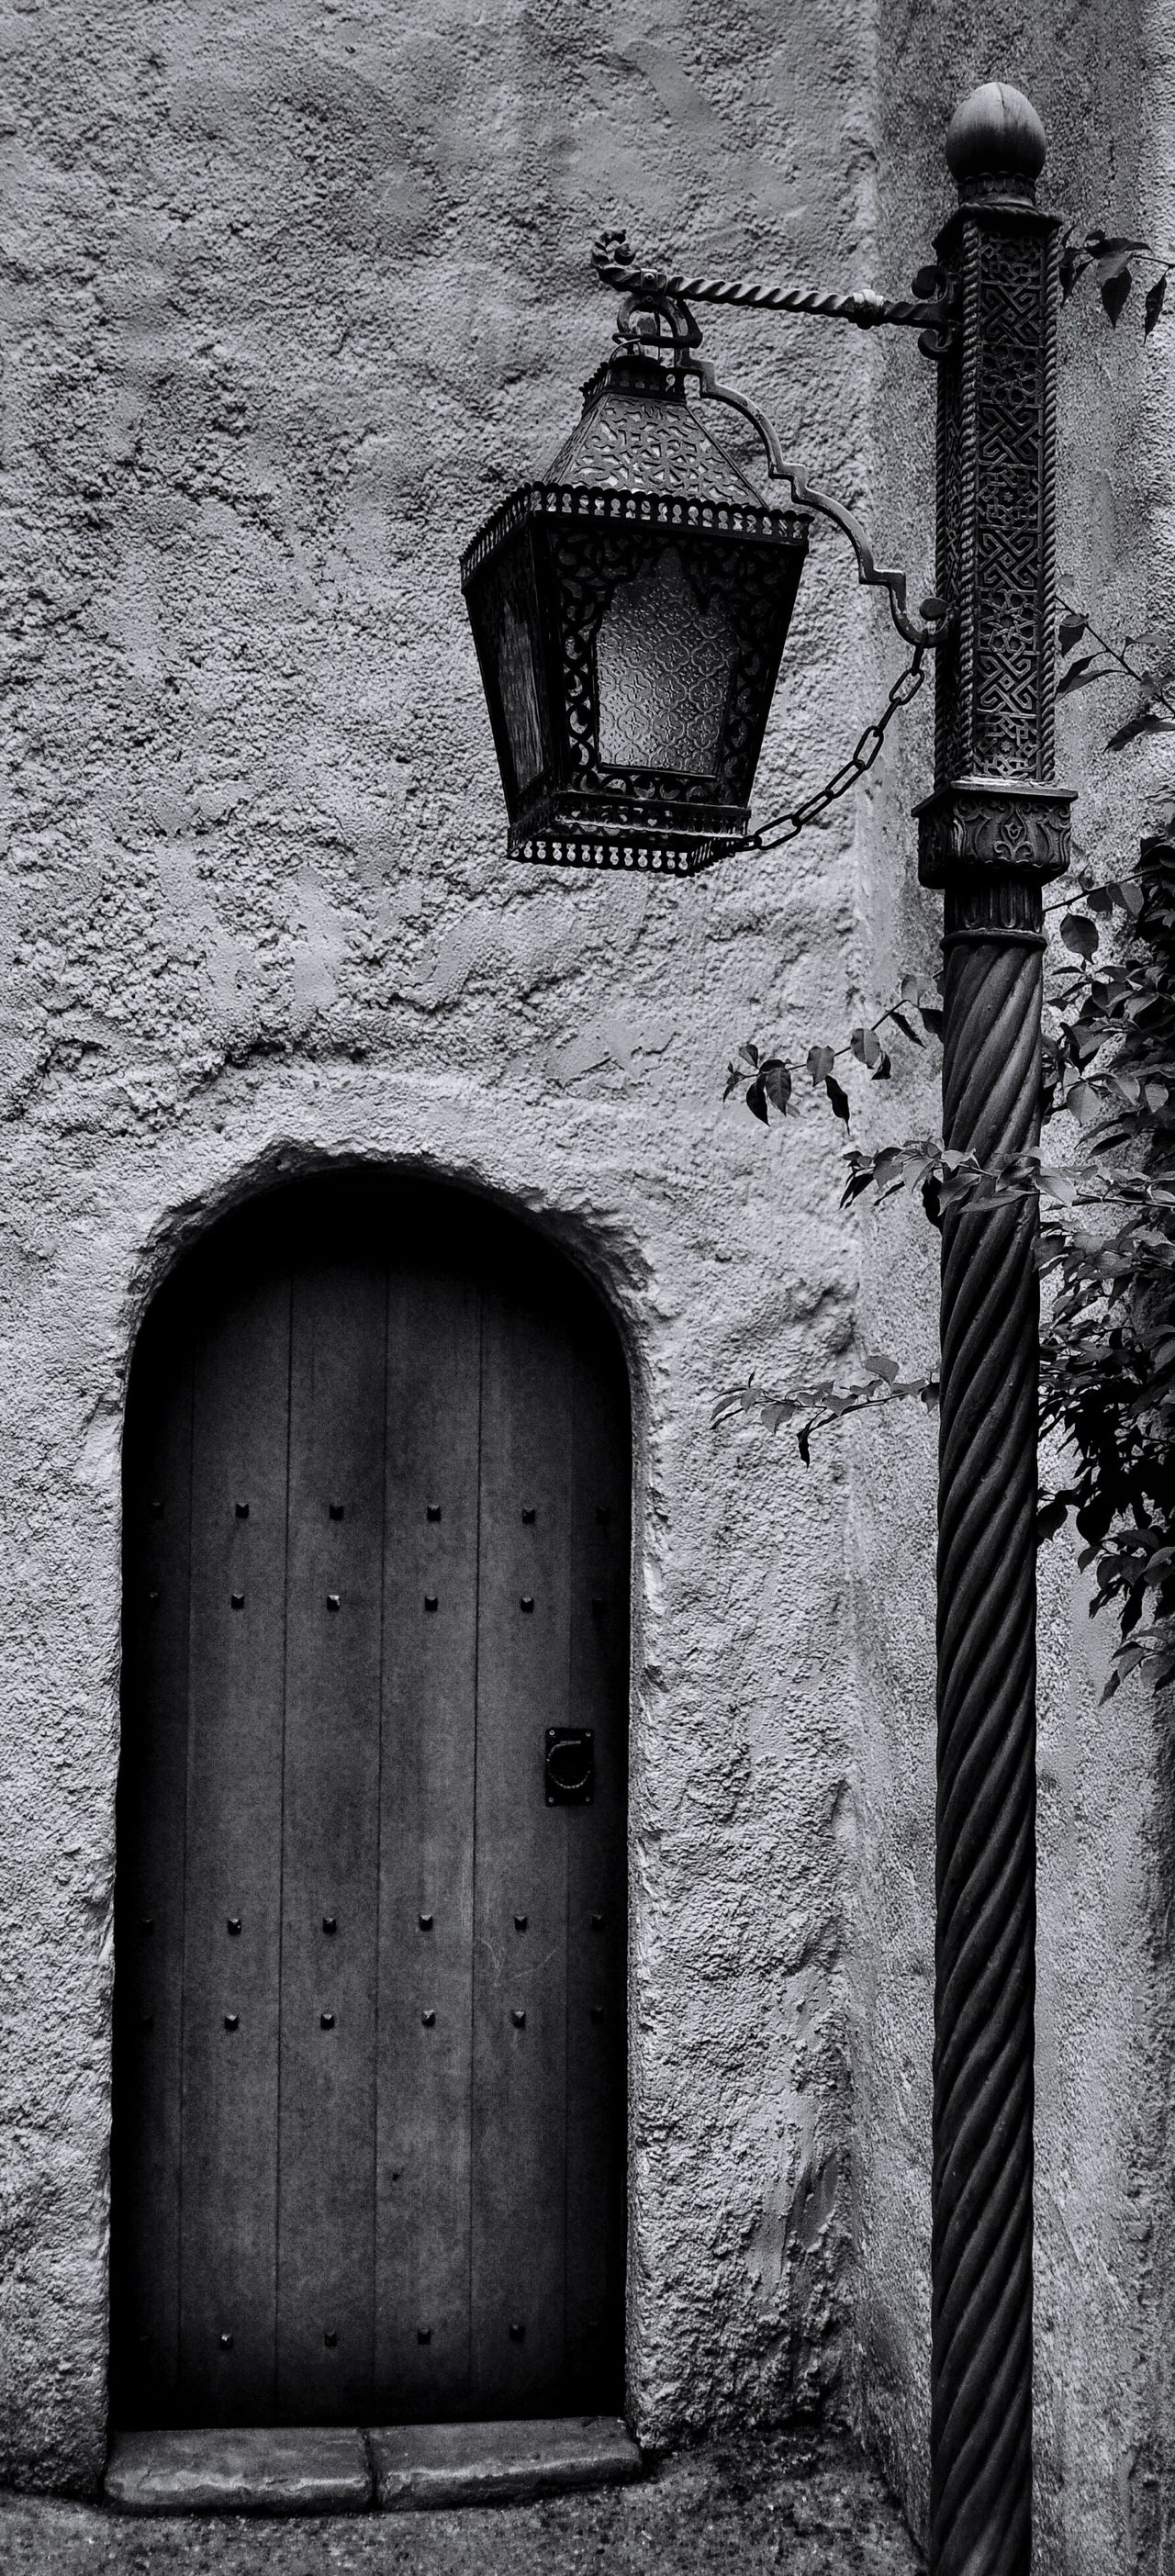 Door number 2 ... Bnw_doors Bnw_friday_eyeemchallenge Architecture Building Exterior Built Structure Brick Wall Entrance No People Day Outdoors Fortheloveofblackandwhite Bw_collection Blackandwhite